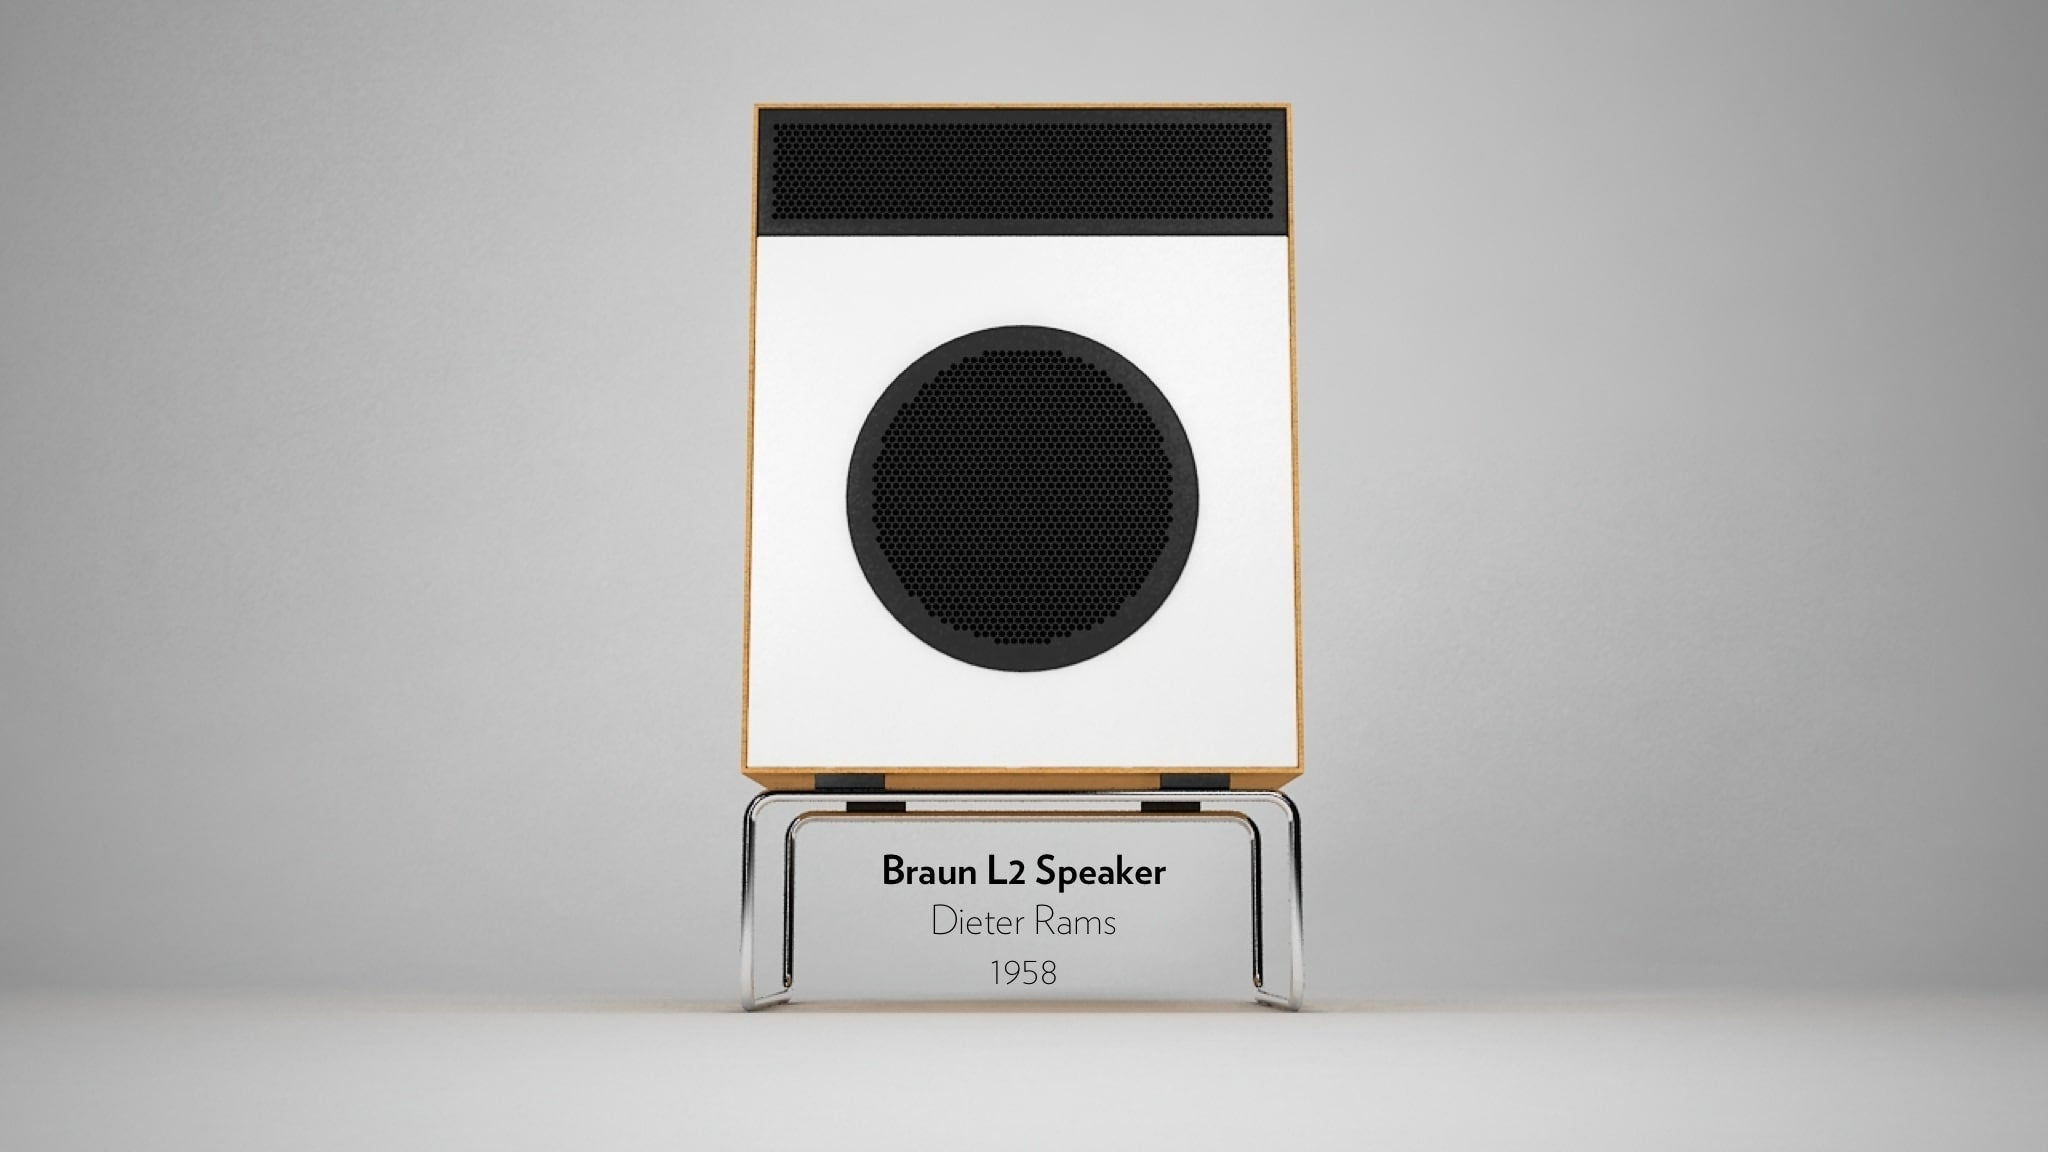 Braun L2 Speaker designed by Dieter Rams in 1958.